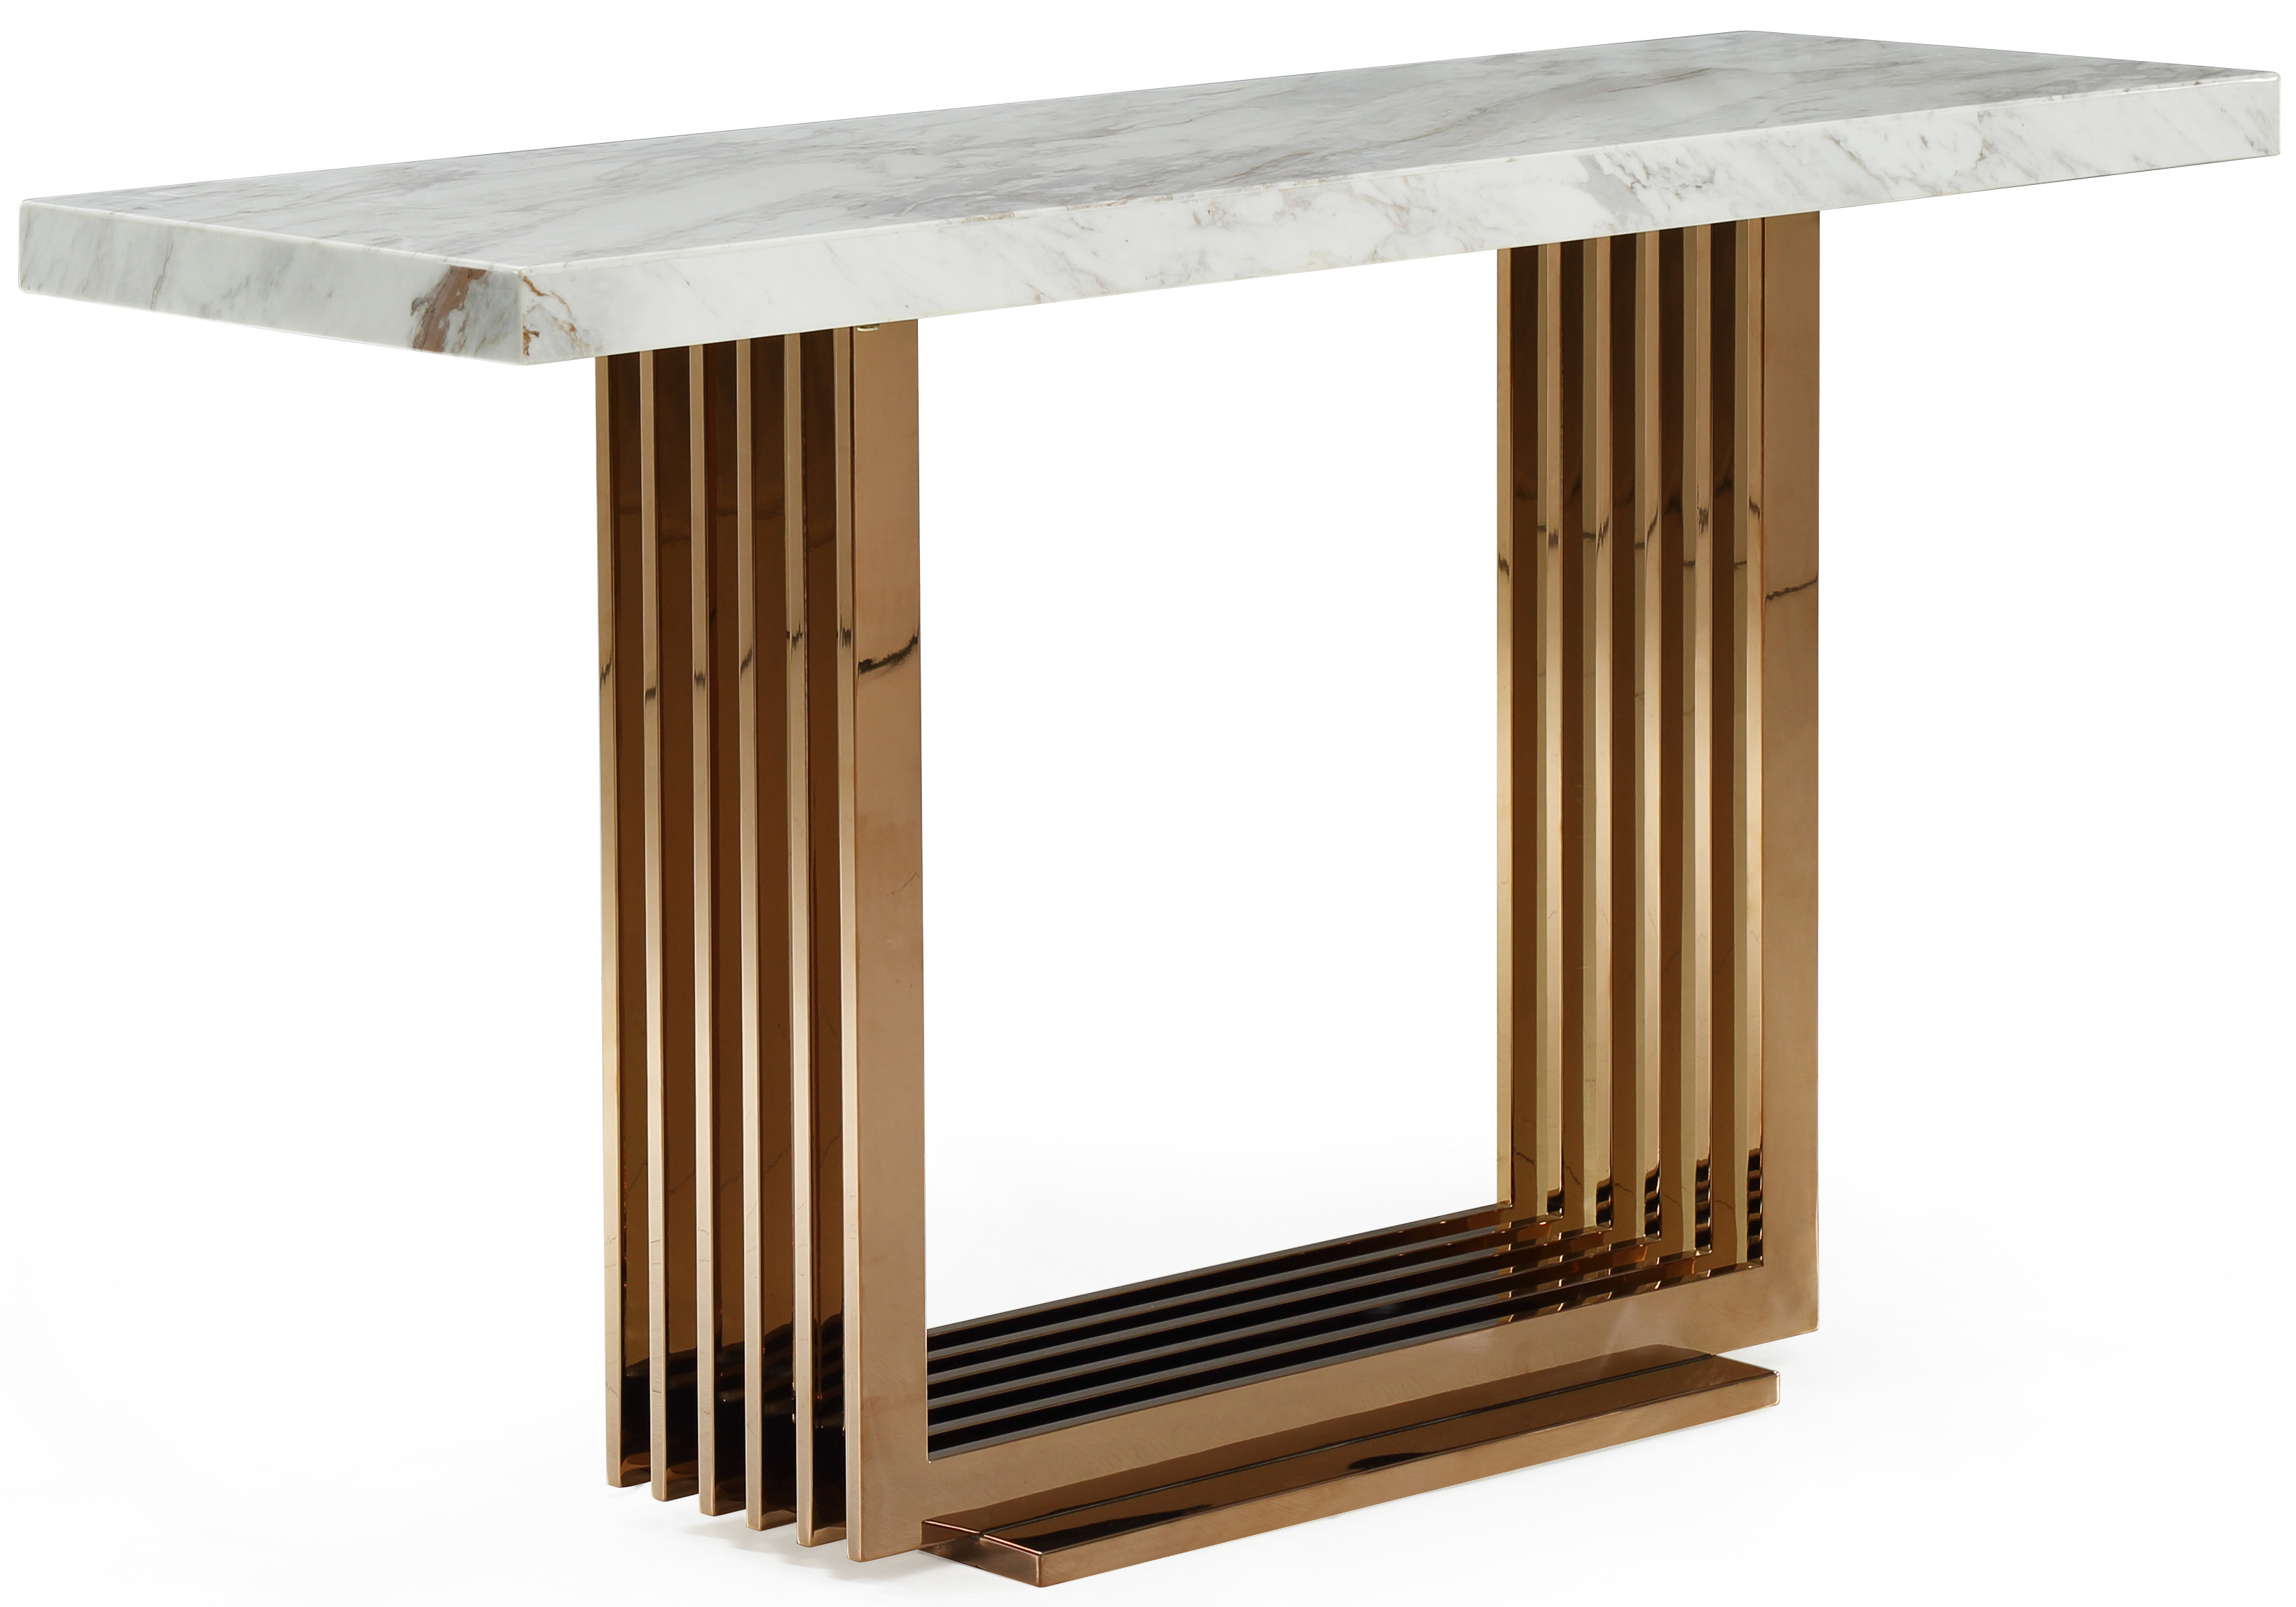 check out the new Fabrizio White Top Marble Console Table available at AdvancedInteriorDesigns.com